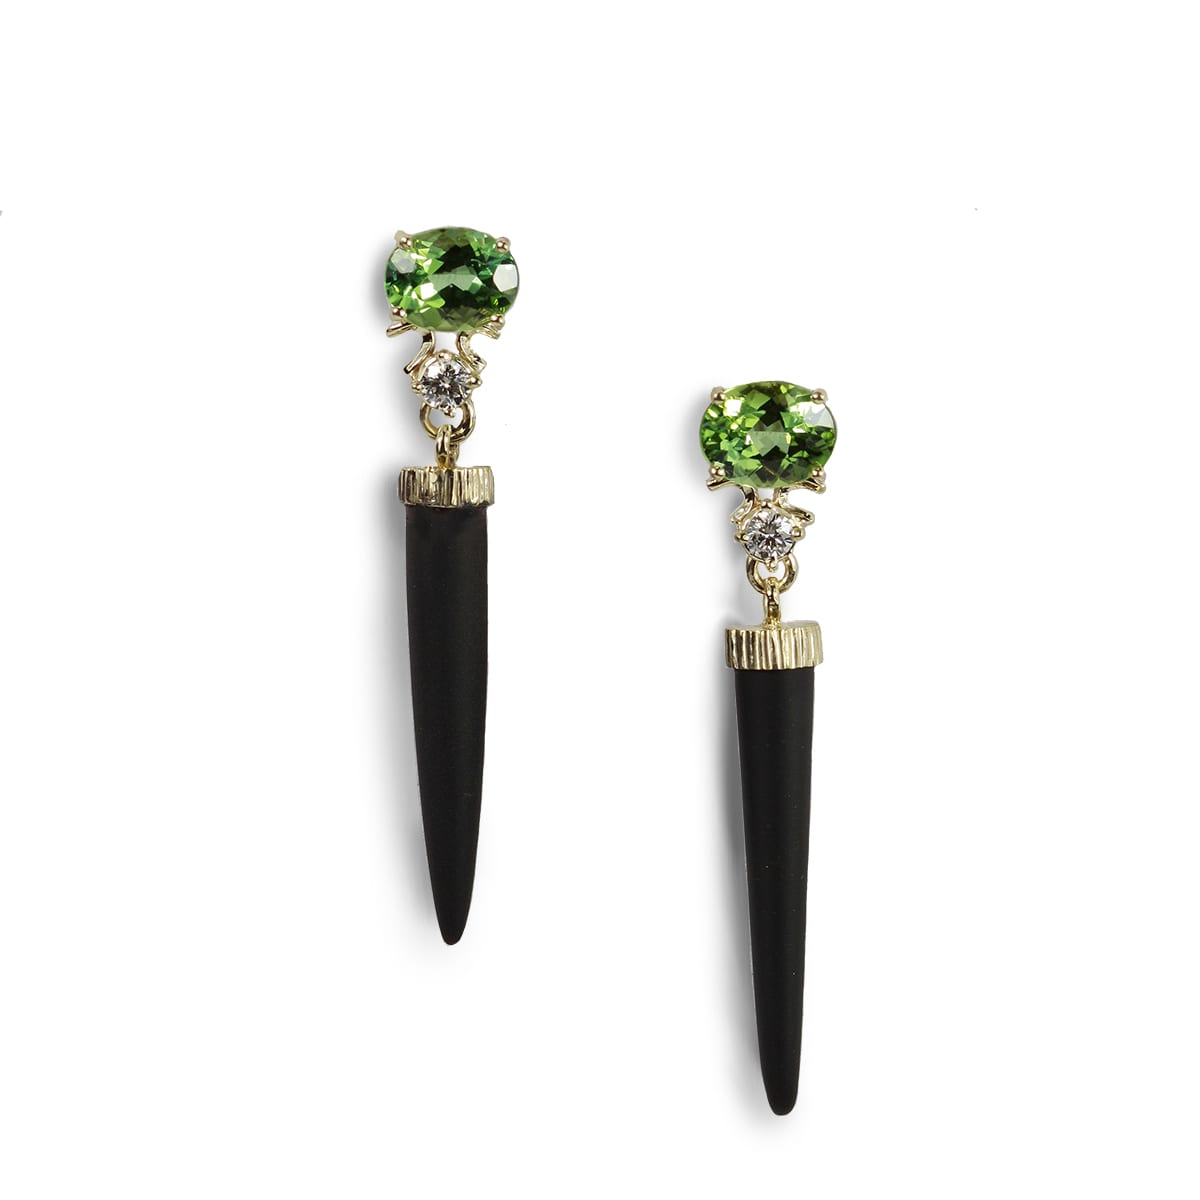 gems london shop false watermelon crop drop product the diamond tourmaline and scale earrings holts subsampling upscale